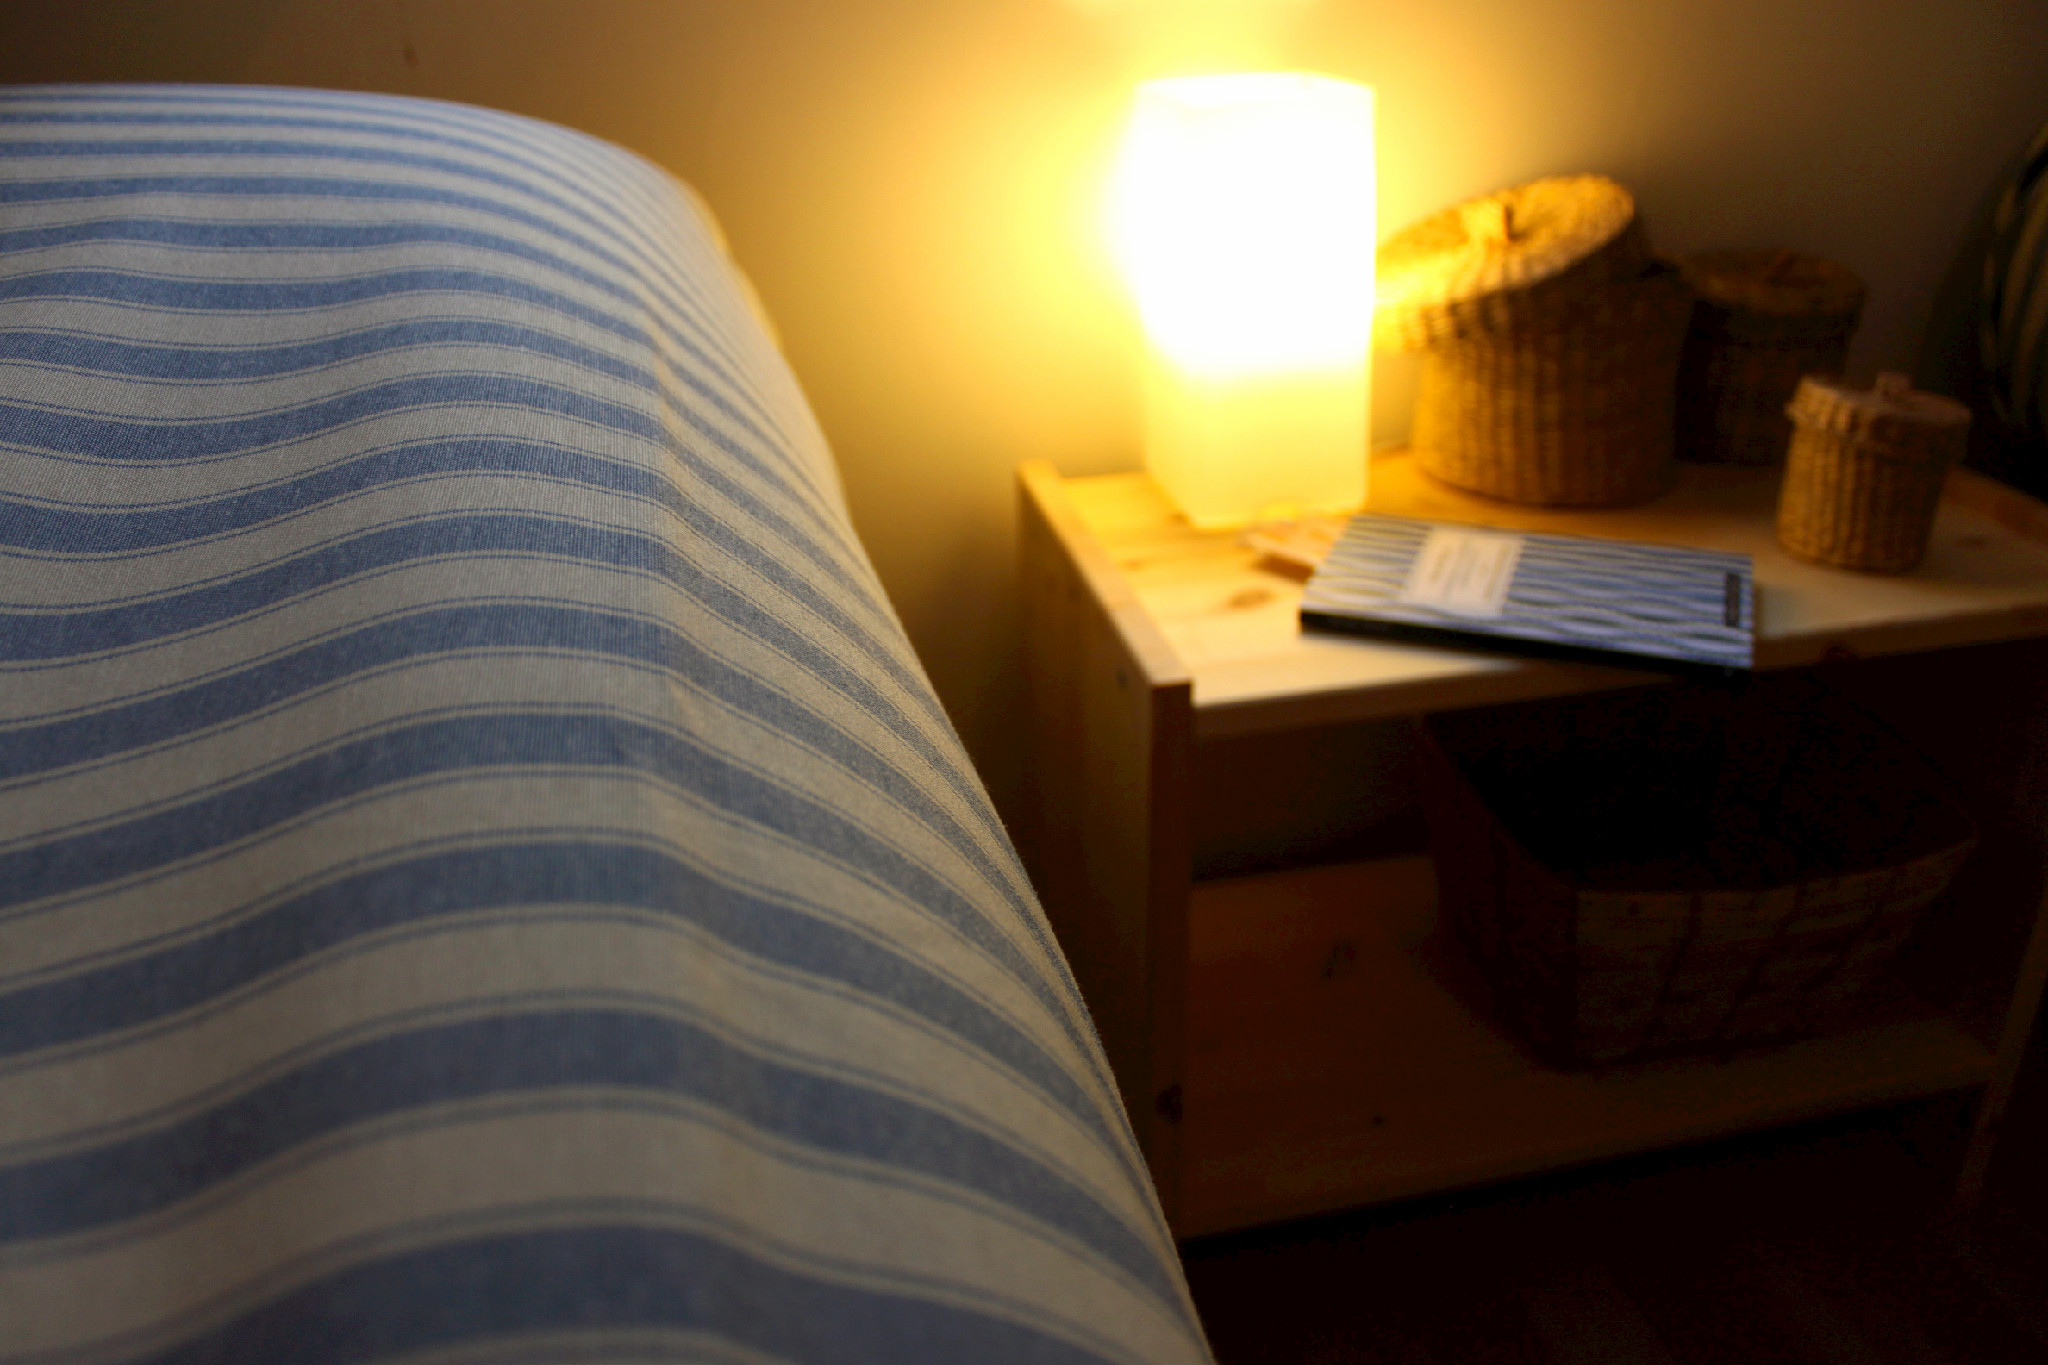 capture the colour contest - yellow - my bed in my home